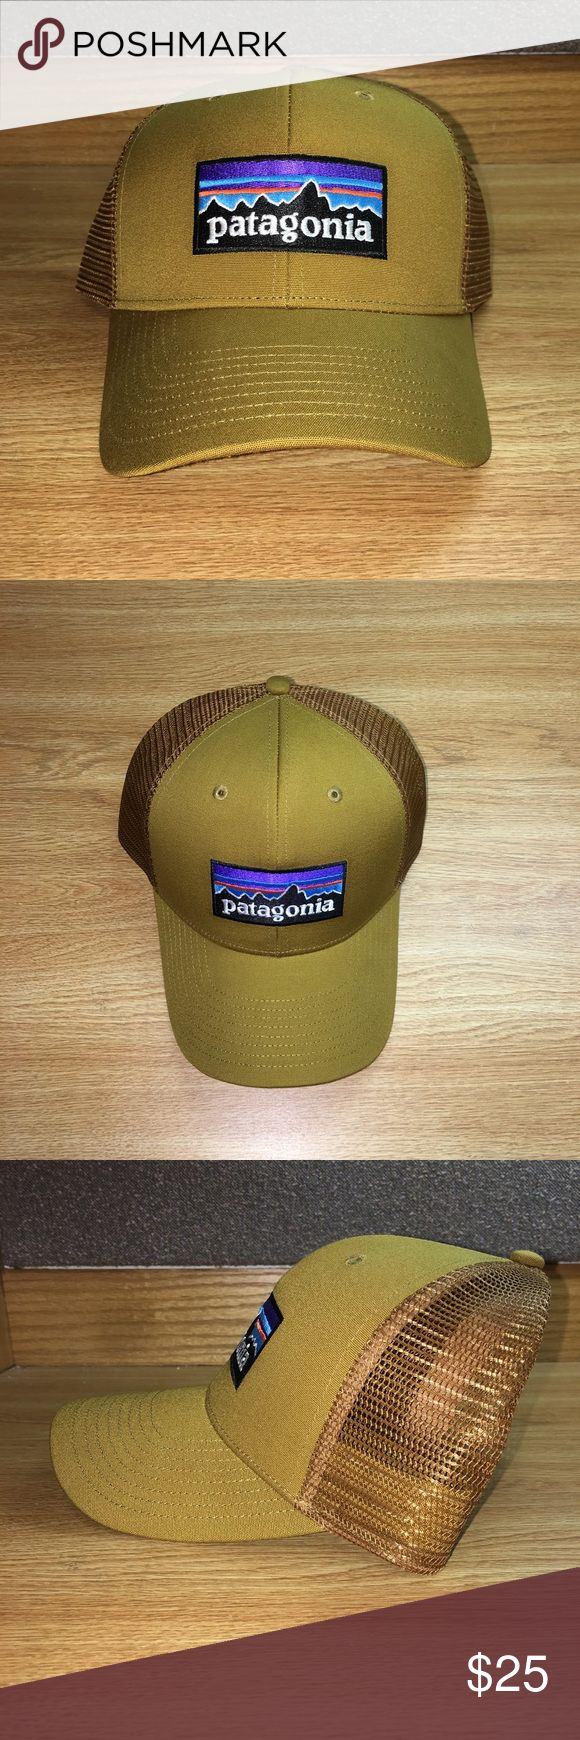 NWOT Patagonia Snapback Trucker Hat Brand new Patagonia Trucker Hat - New without Tags - Tan front and Tan mesh - classic Patagonia logo on front - curved bill and snapback - Perfect condition Fast Shipping!  Patagonia Accessories Hats